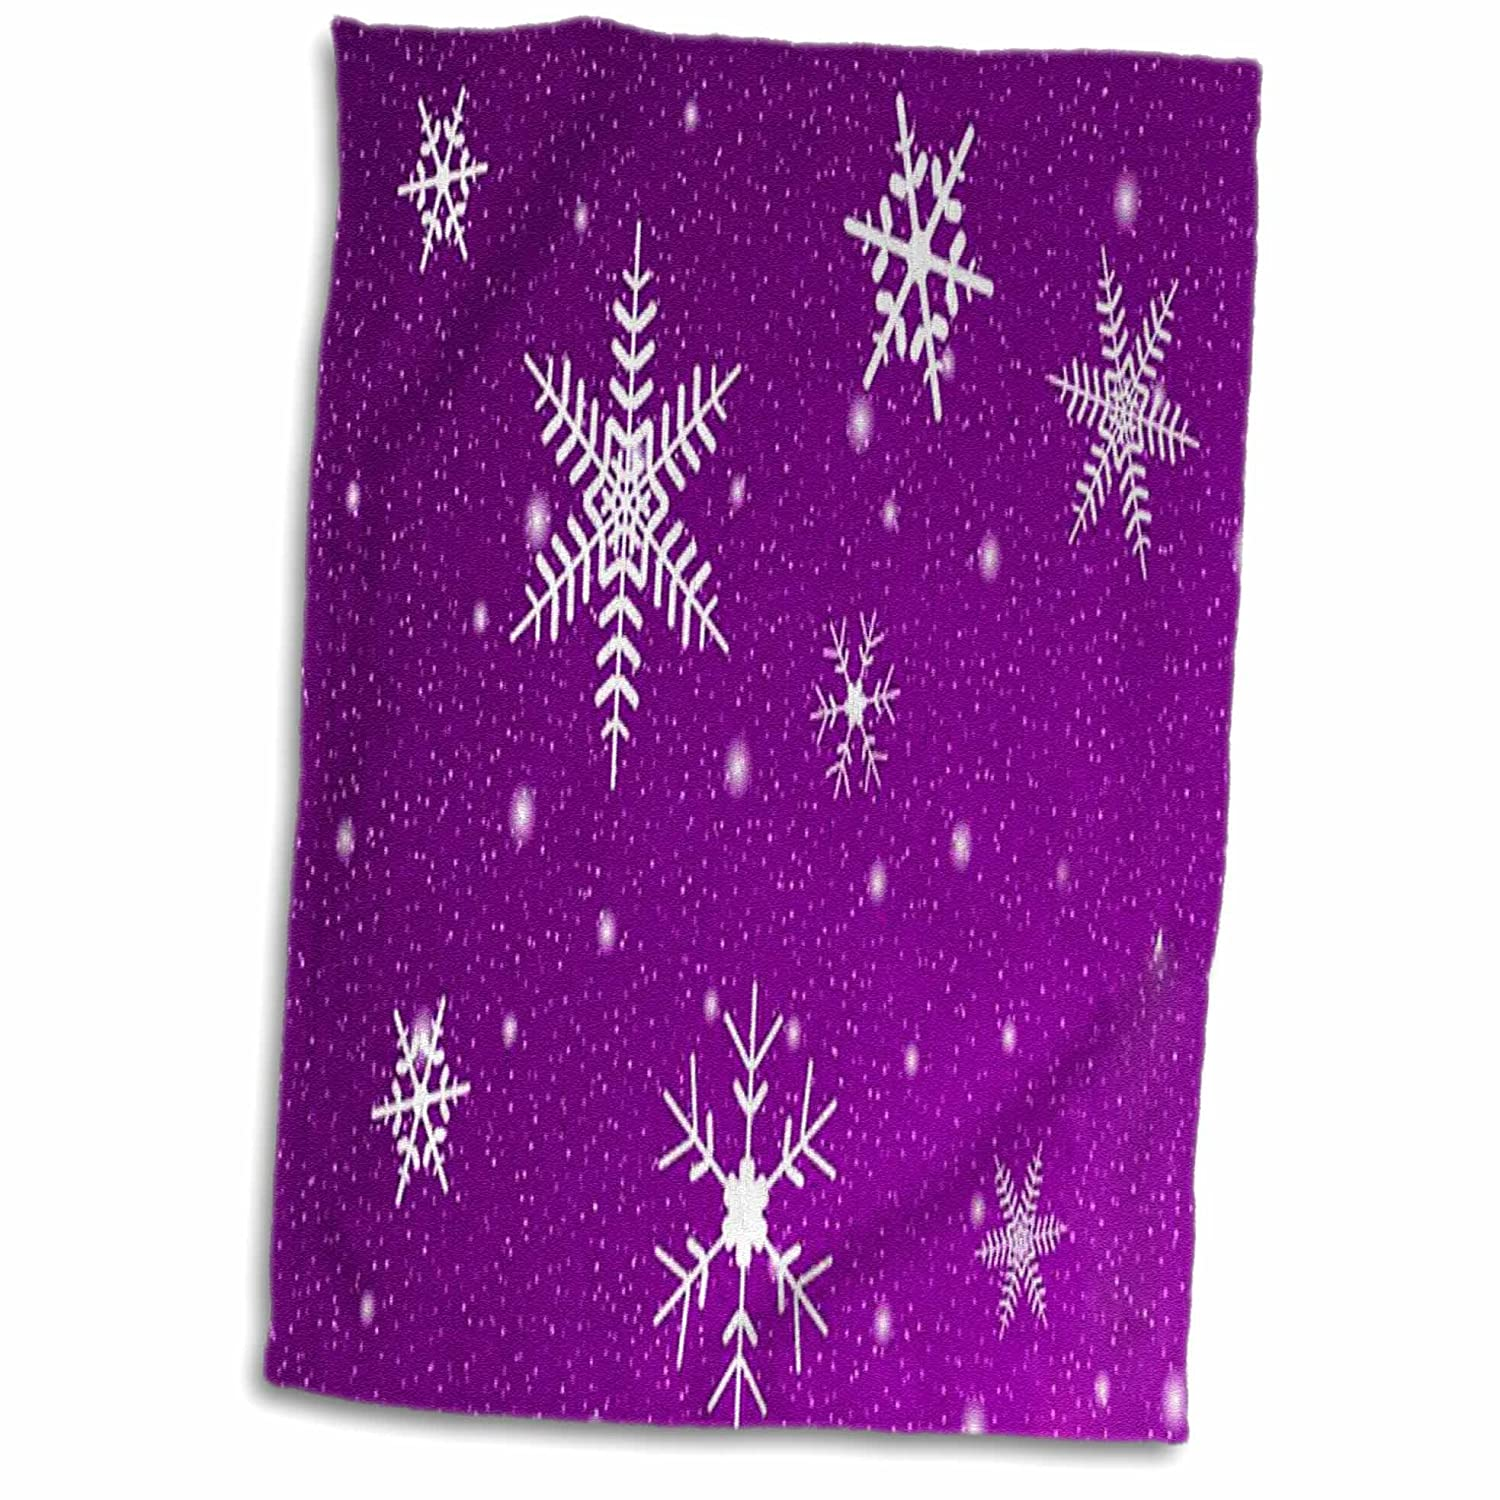 3D Rose Snowflakes with Purple Background Towel 15 x 22